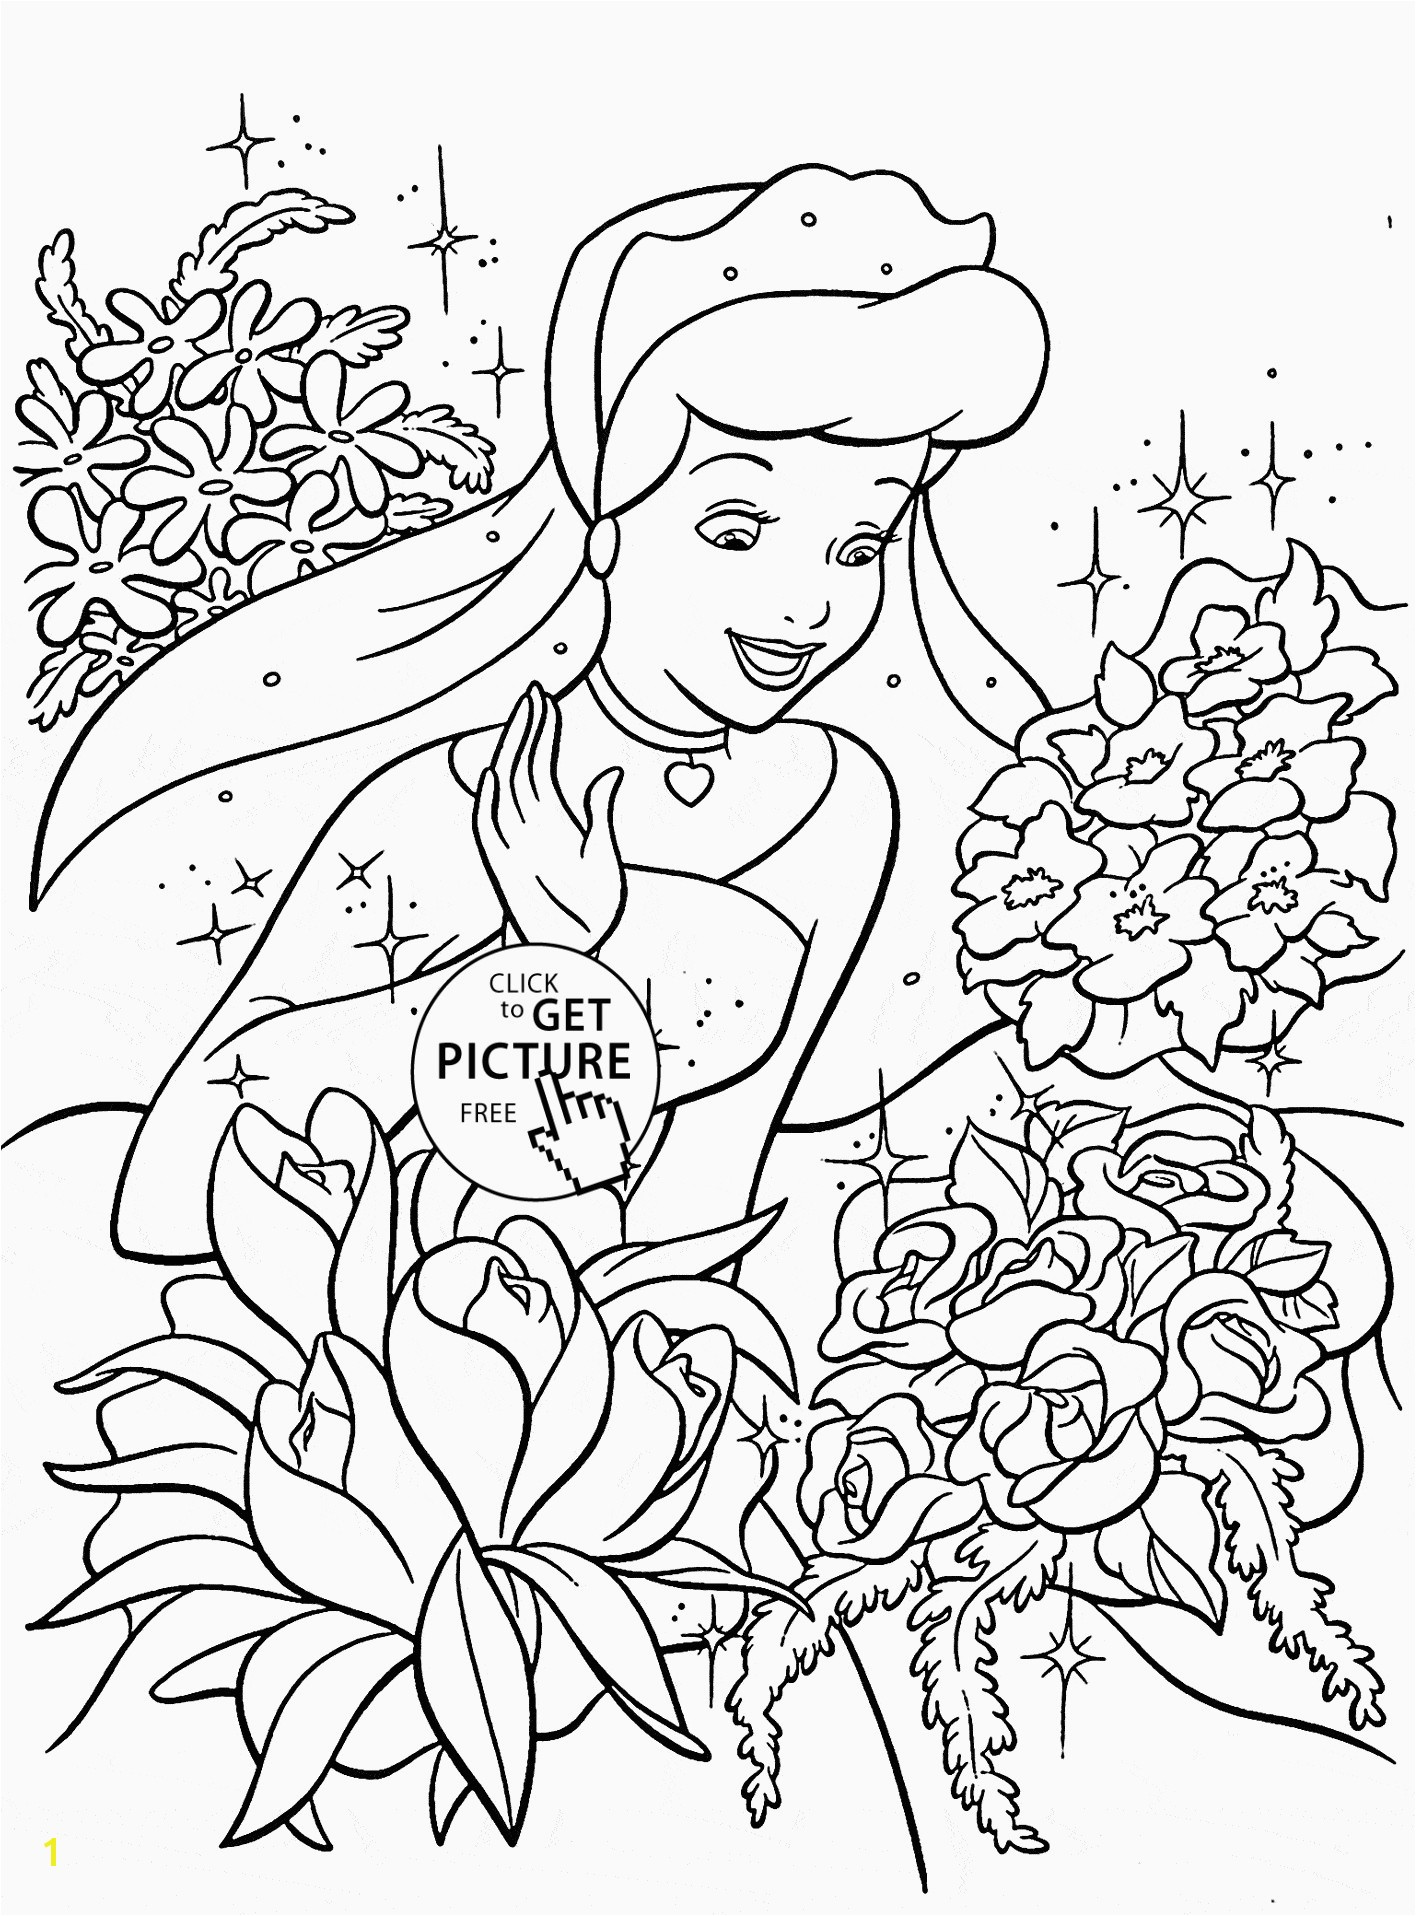 Toy Story 1 Coloring Pages toy Story 1 Coloring Pages Best toy Story Sheriff Woody and Buzz